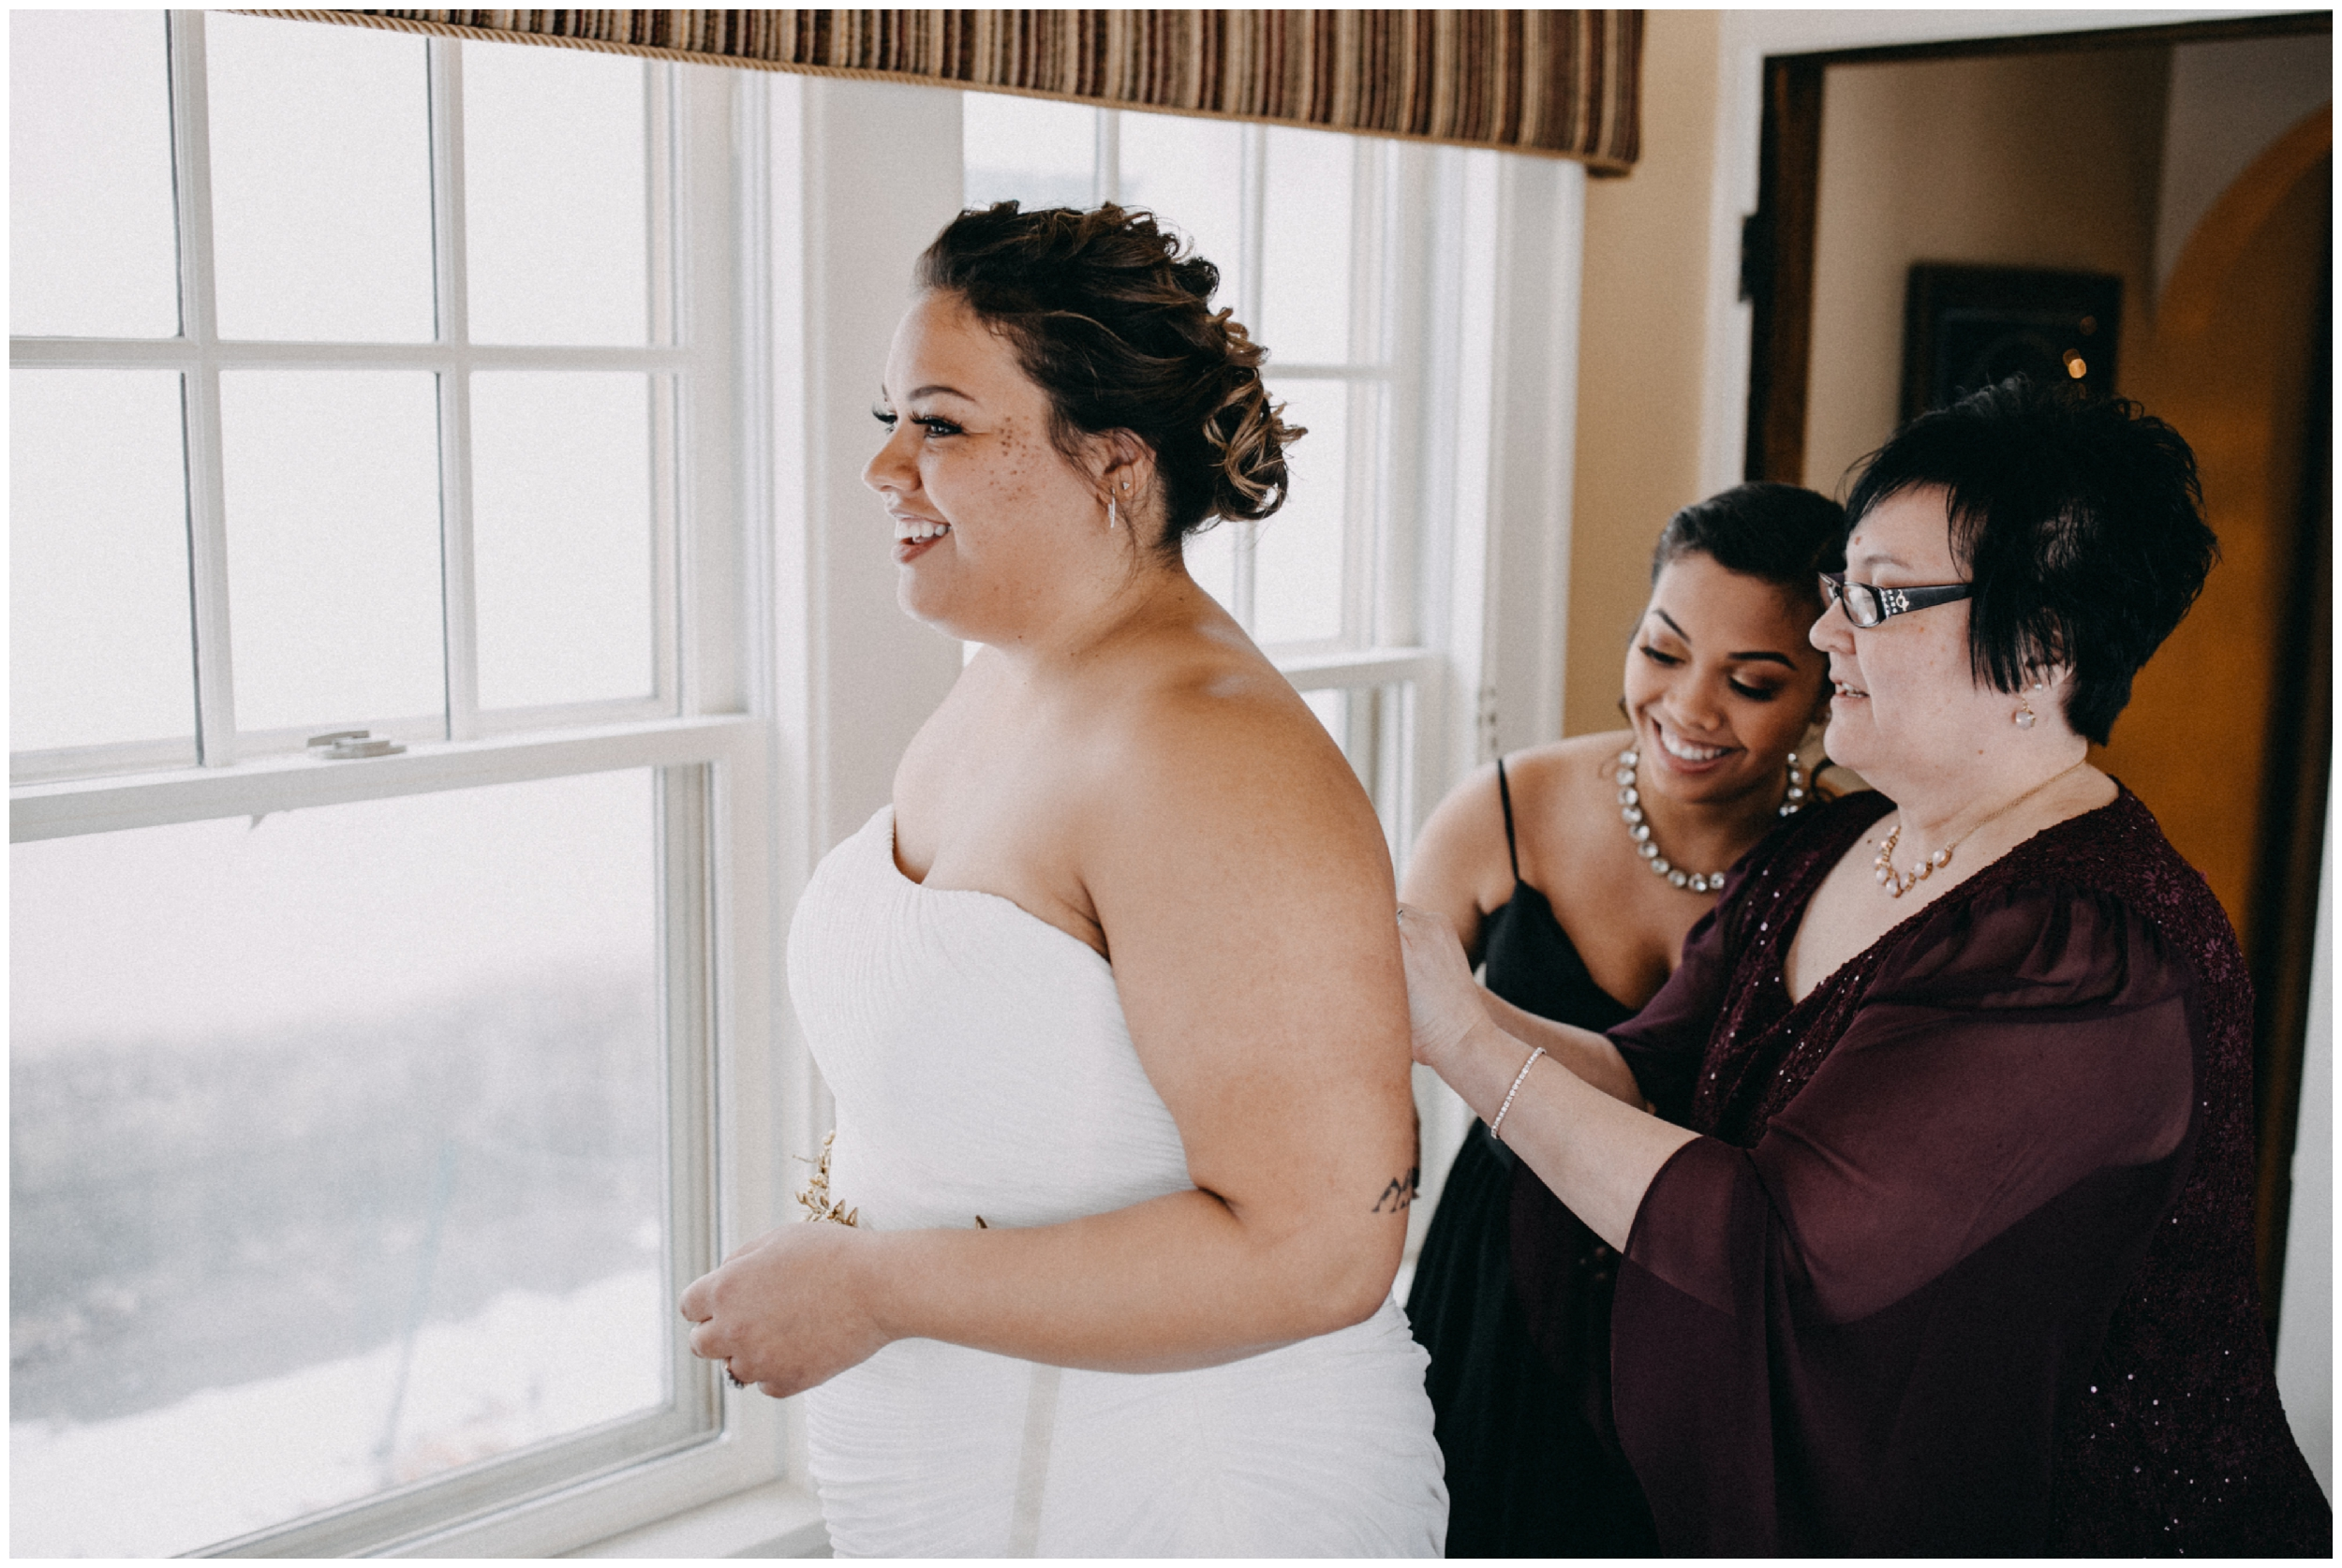 Mother and sister of the bride helping her into wedding dress in Minneapolis Minnesota